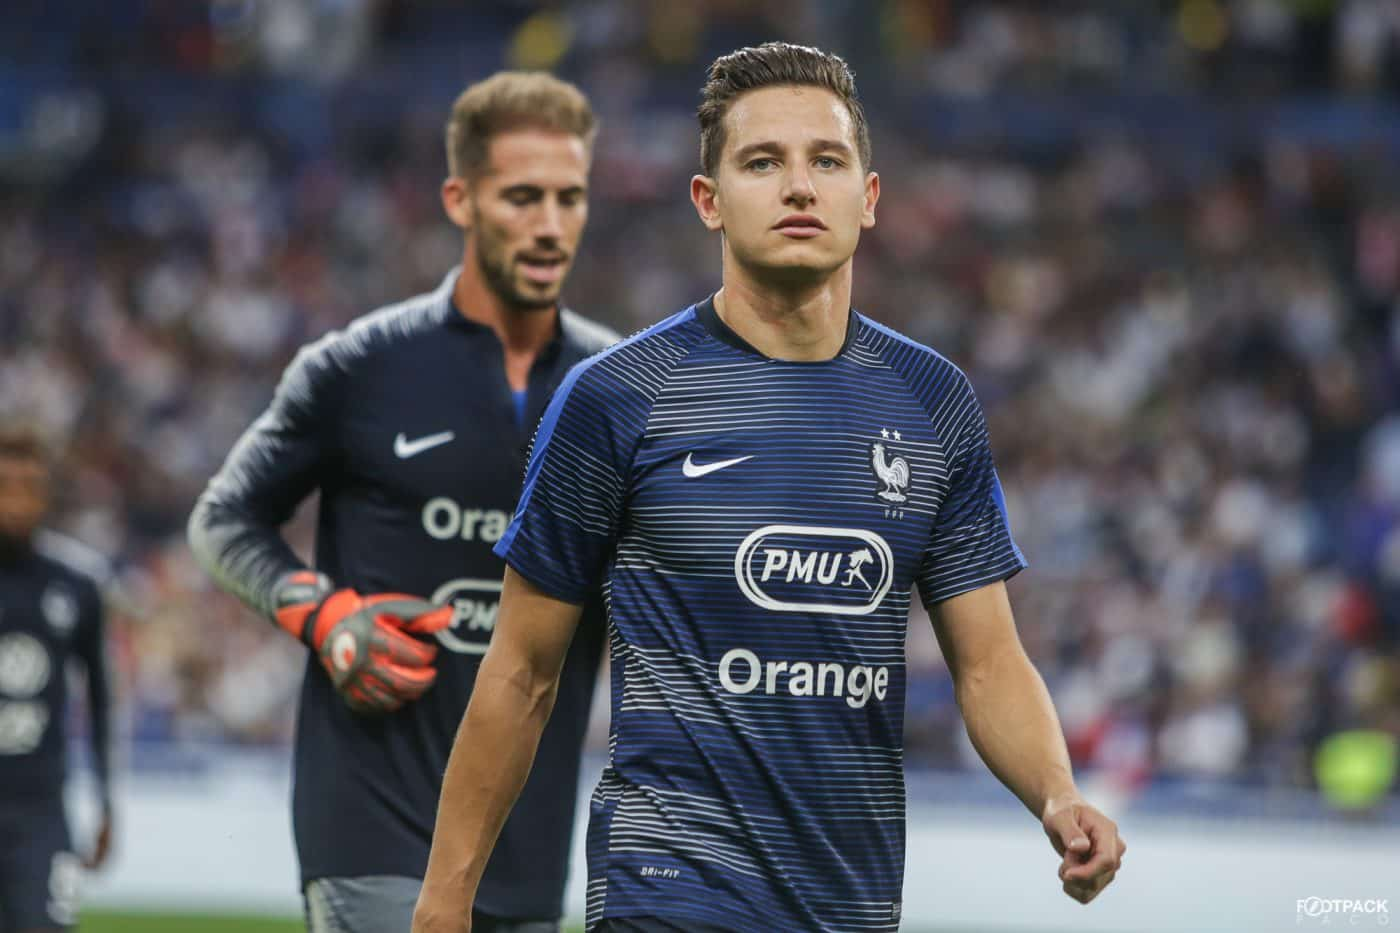 au-stade-france-pays-bas-thauvin